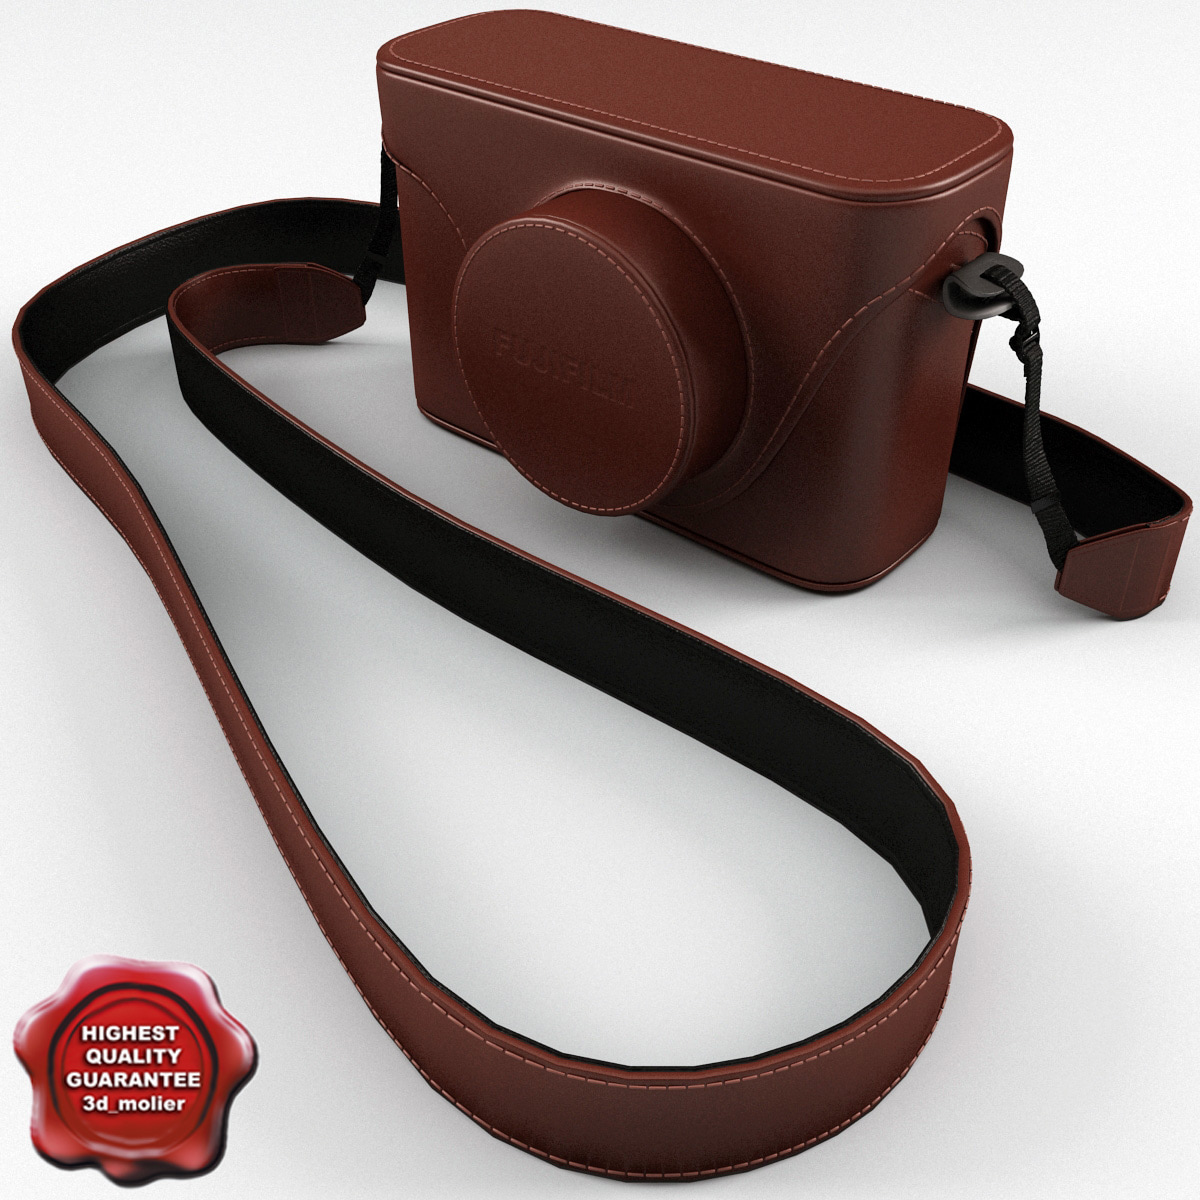 Fujifilm_X100_Leather_Case_00.jpg